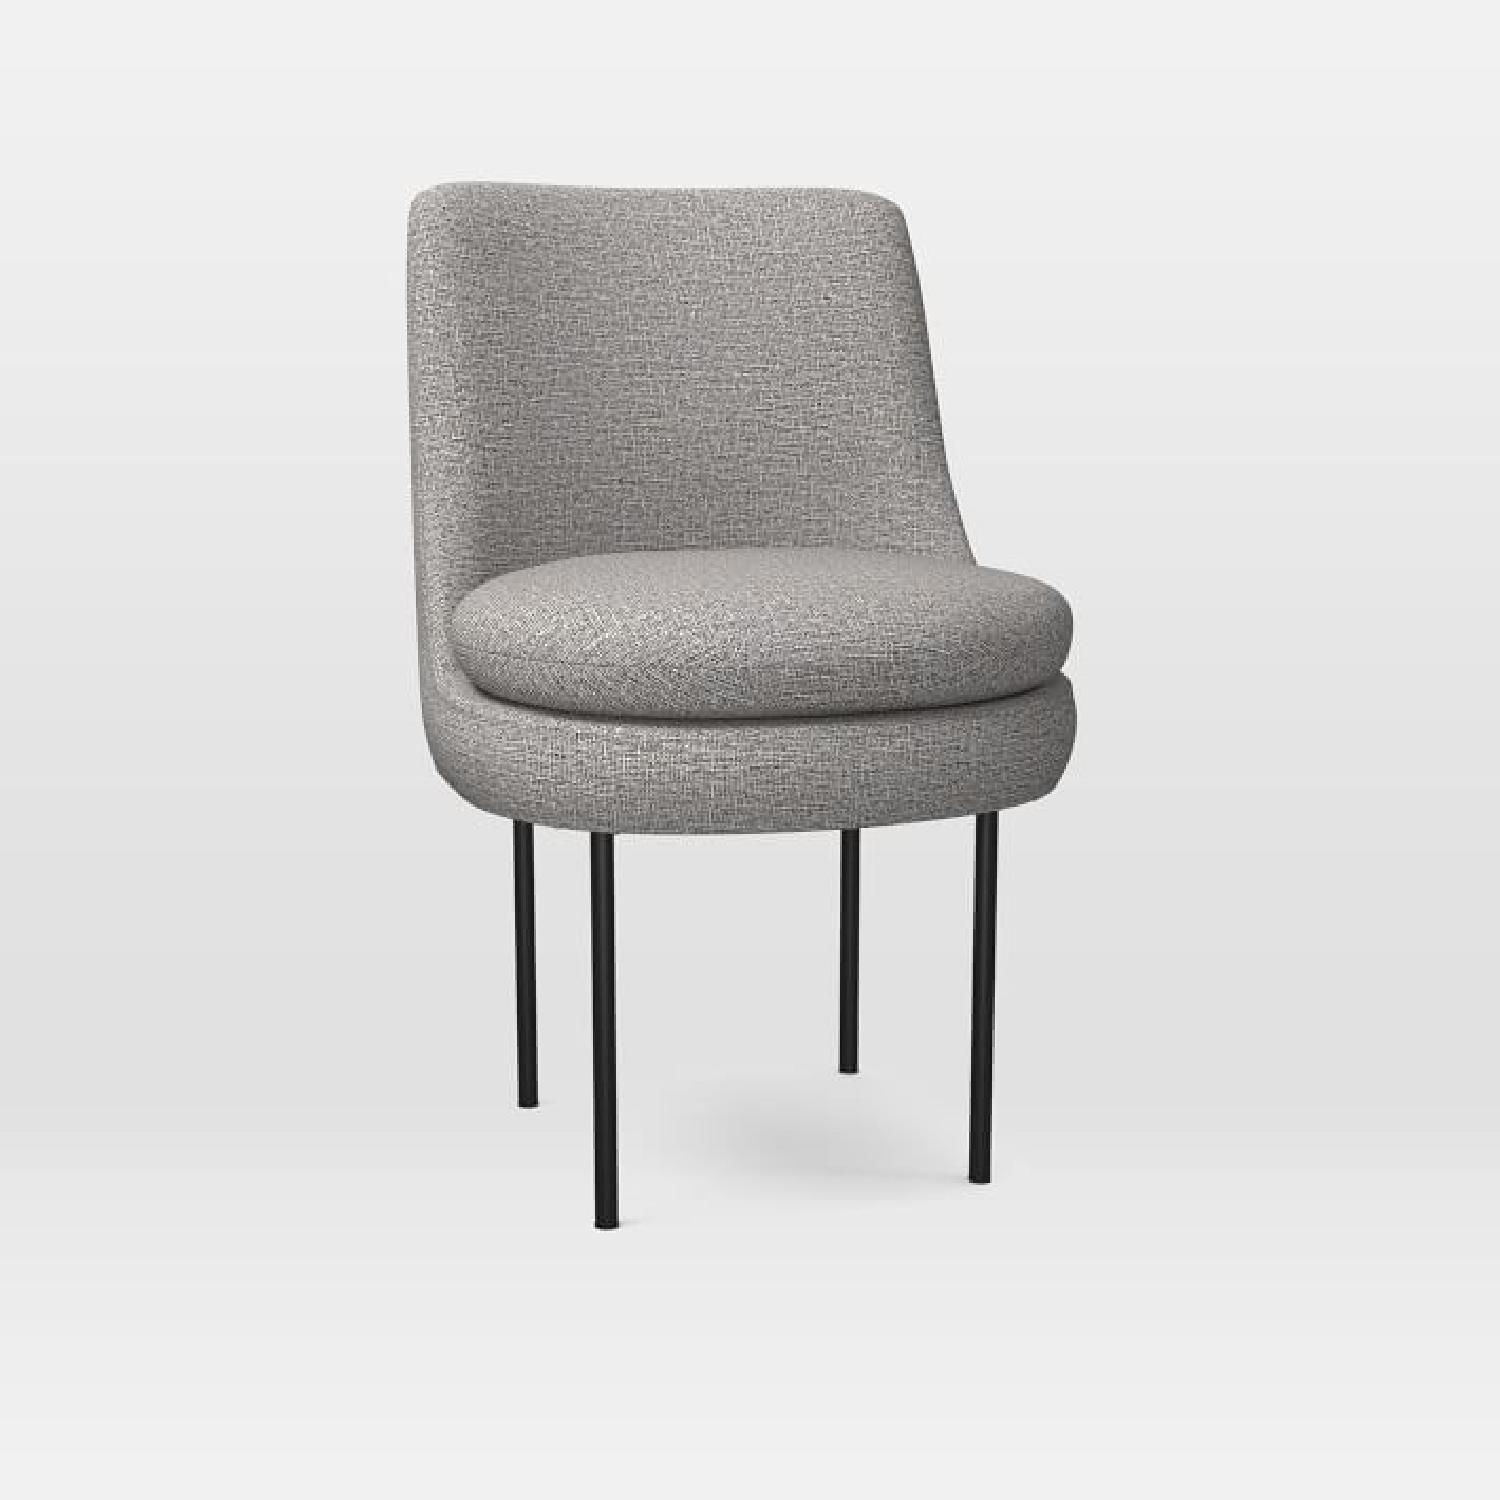 West Elm Leather Upholstered Dining Chair in Feather Grey - image-1